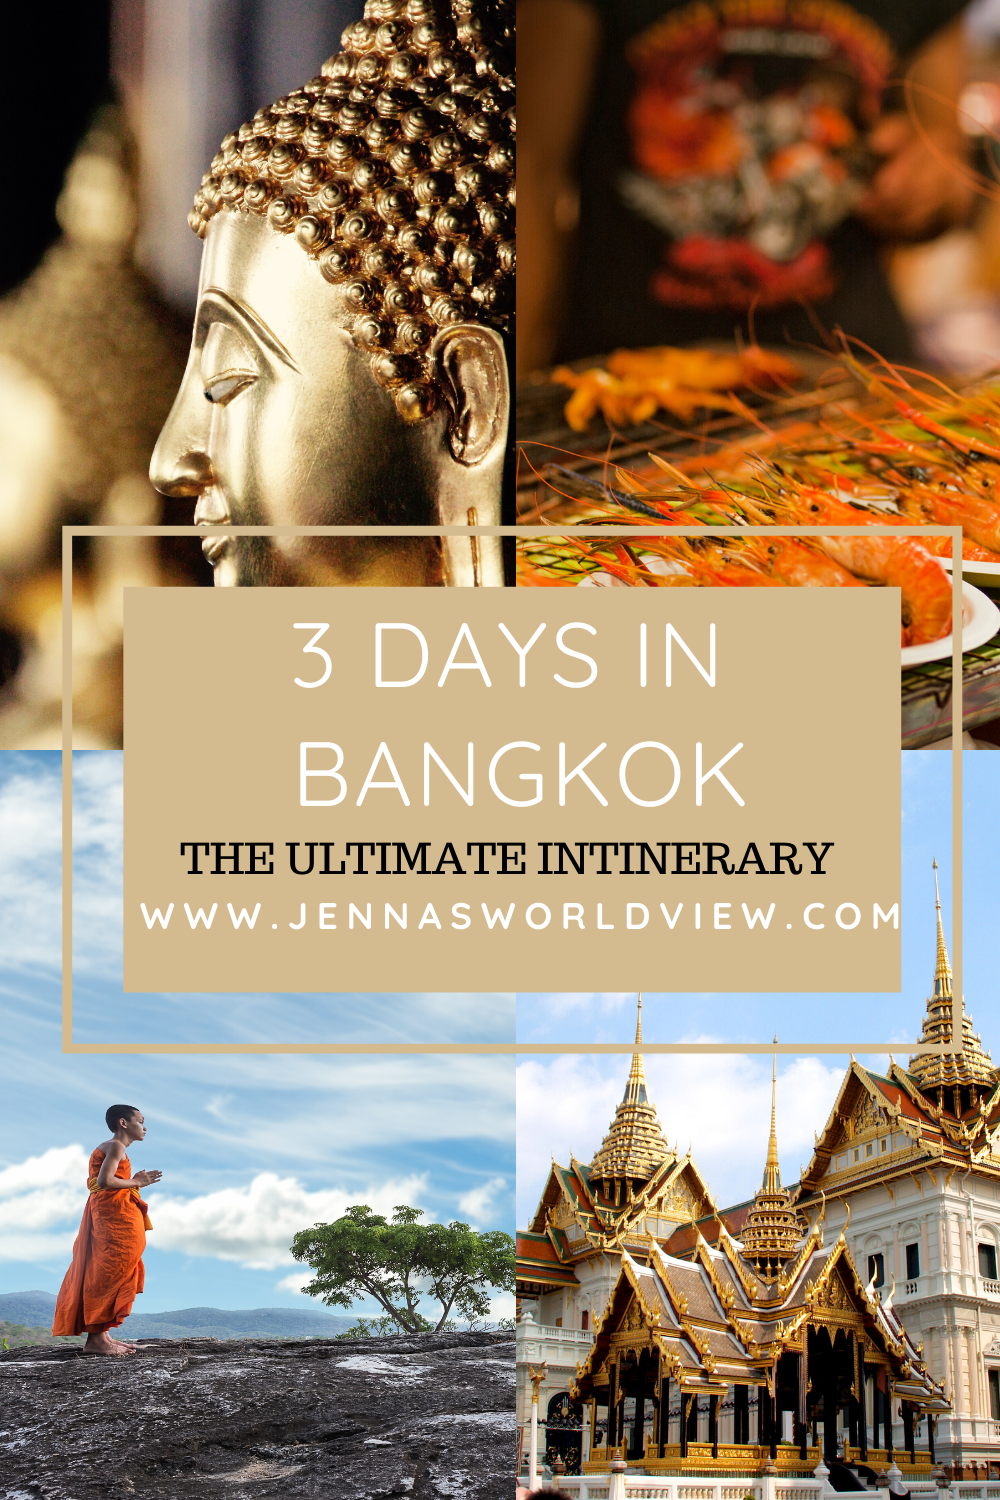 THINGS TO DO IN BANGKOK Things to do in Bangkokin three days